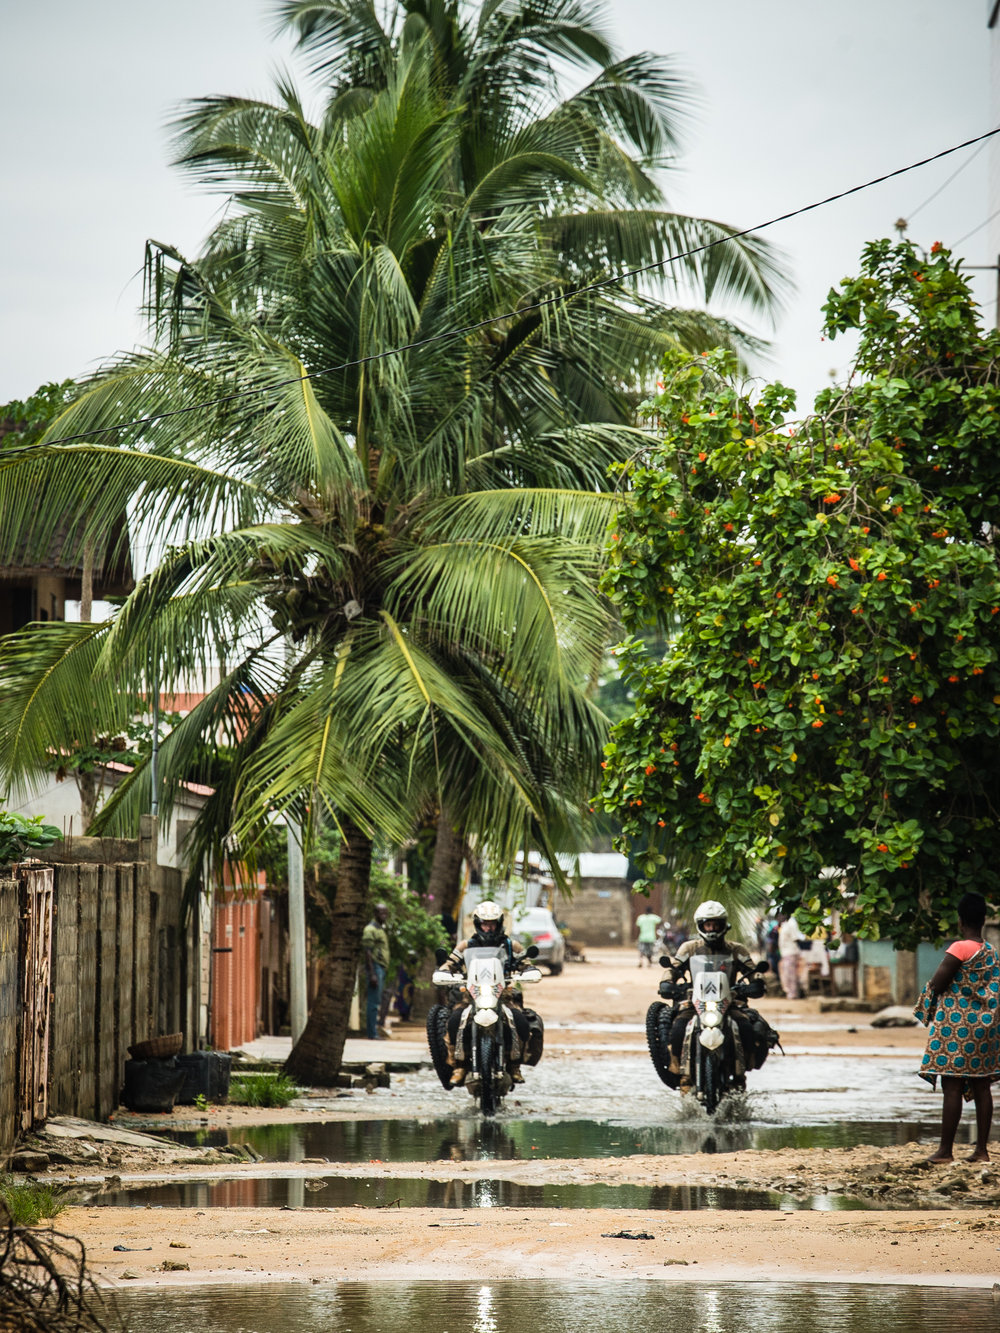 The streets of Cotonou after a monsoonal downpour that would be a taste of things to come.